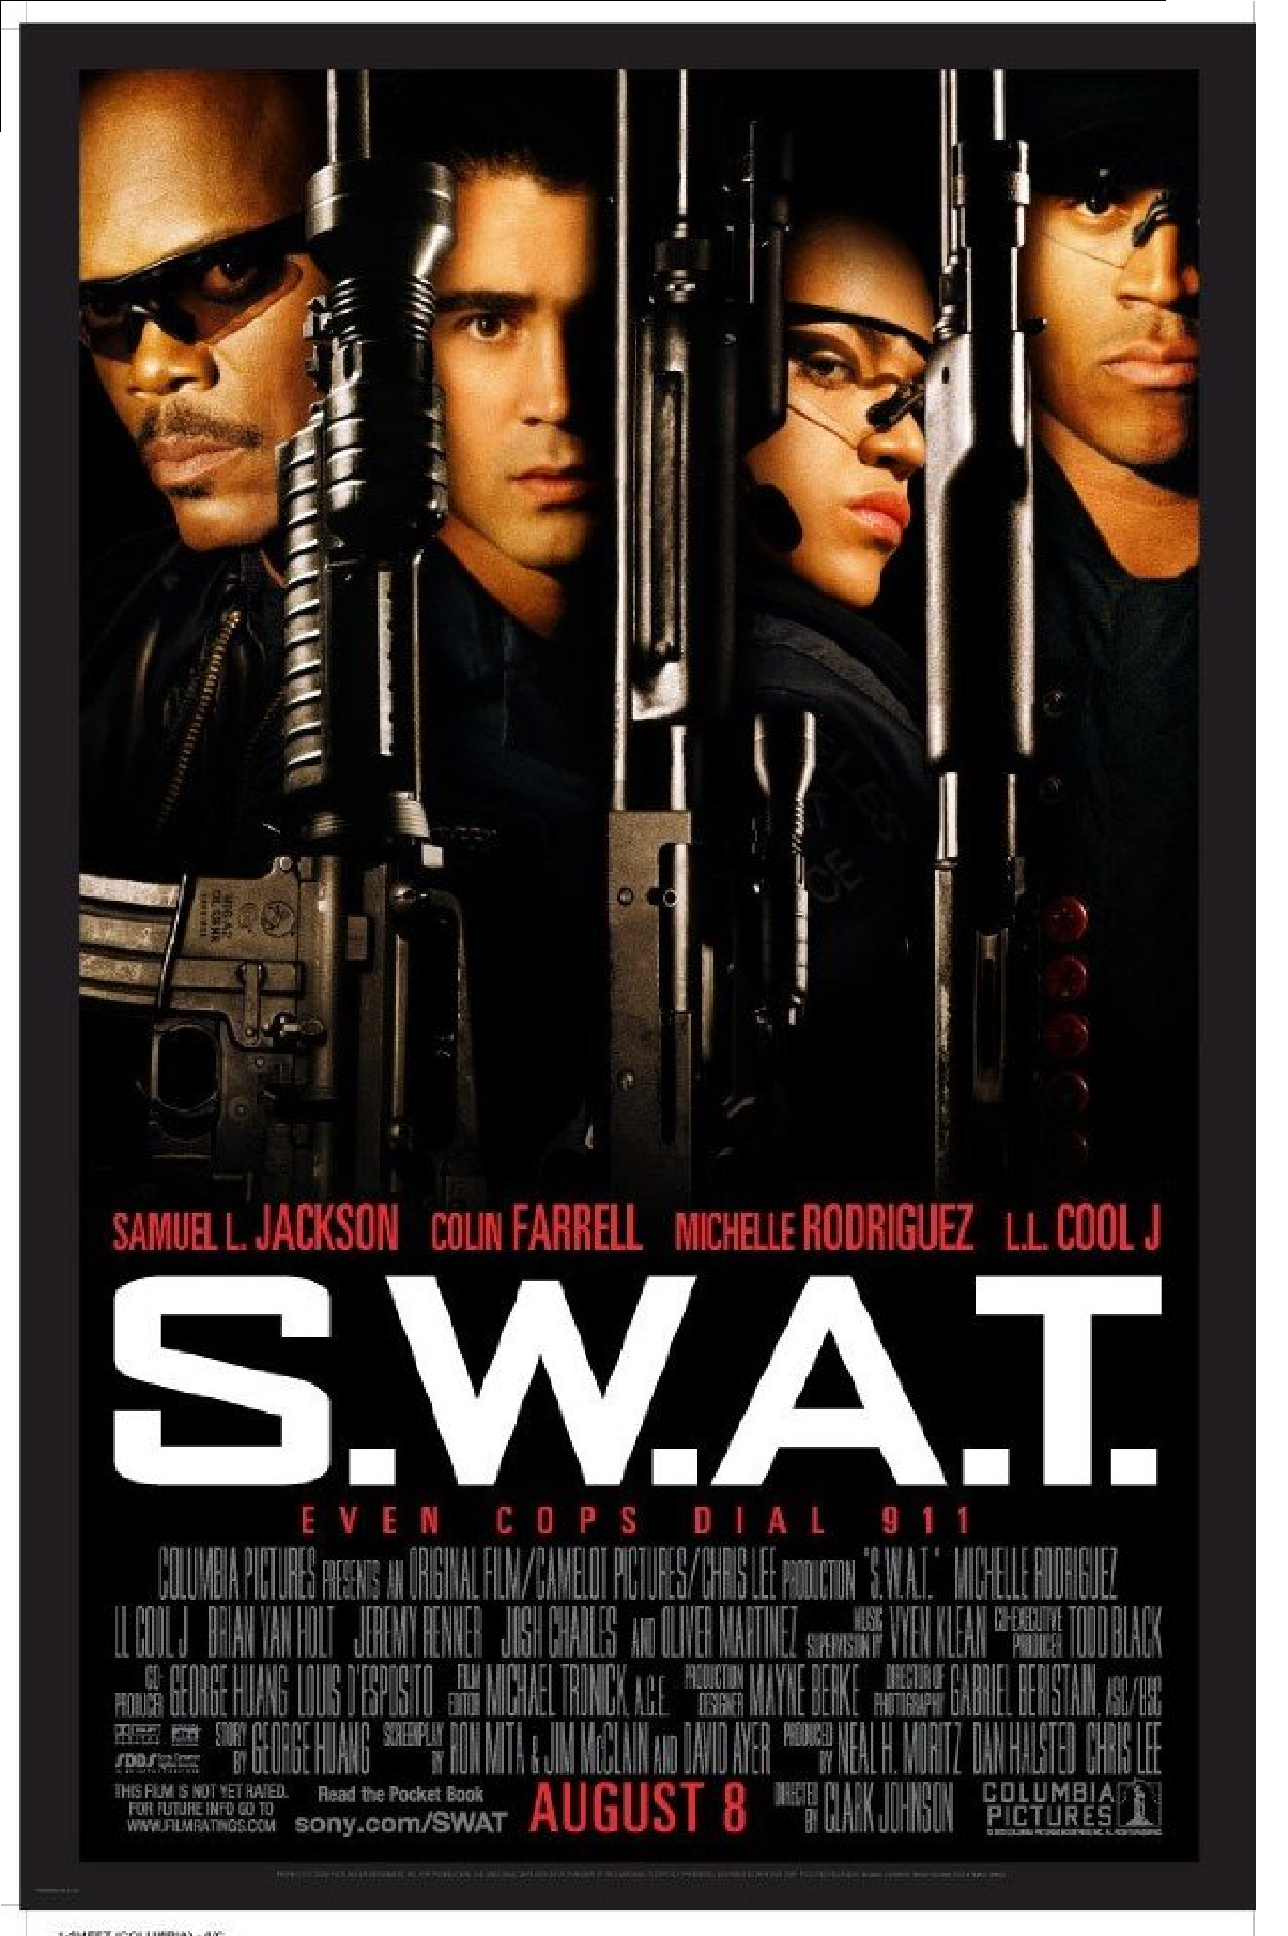 SWAT images S.W.A.T HD wallpaper and background photos ...